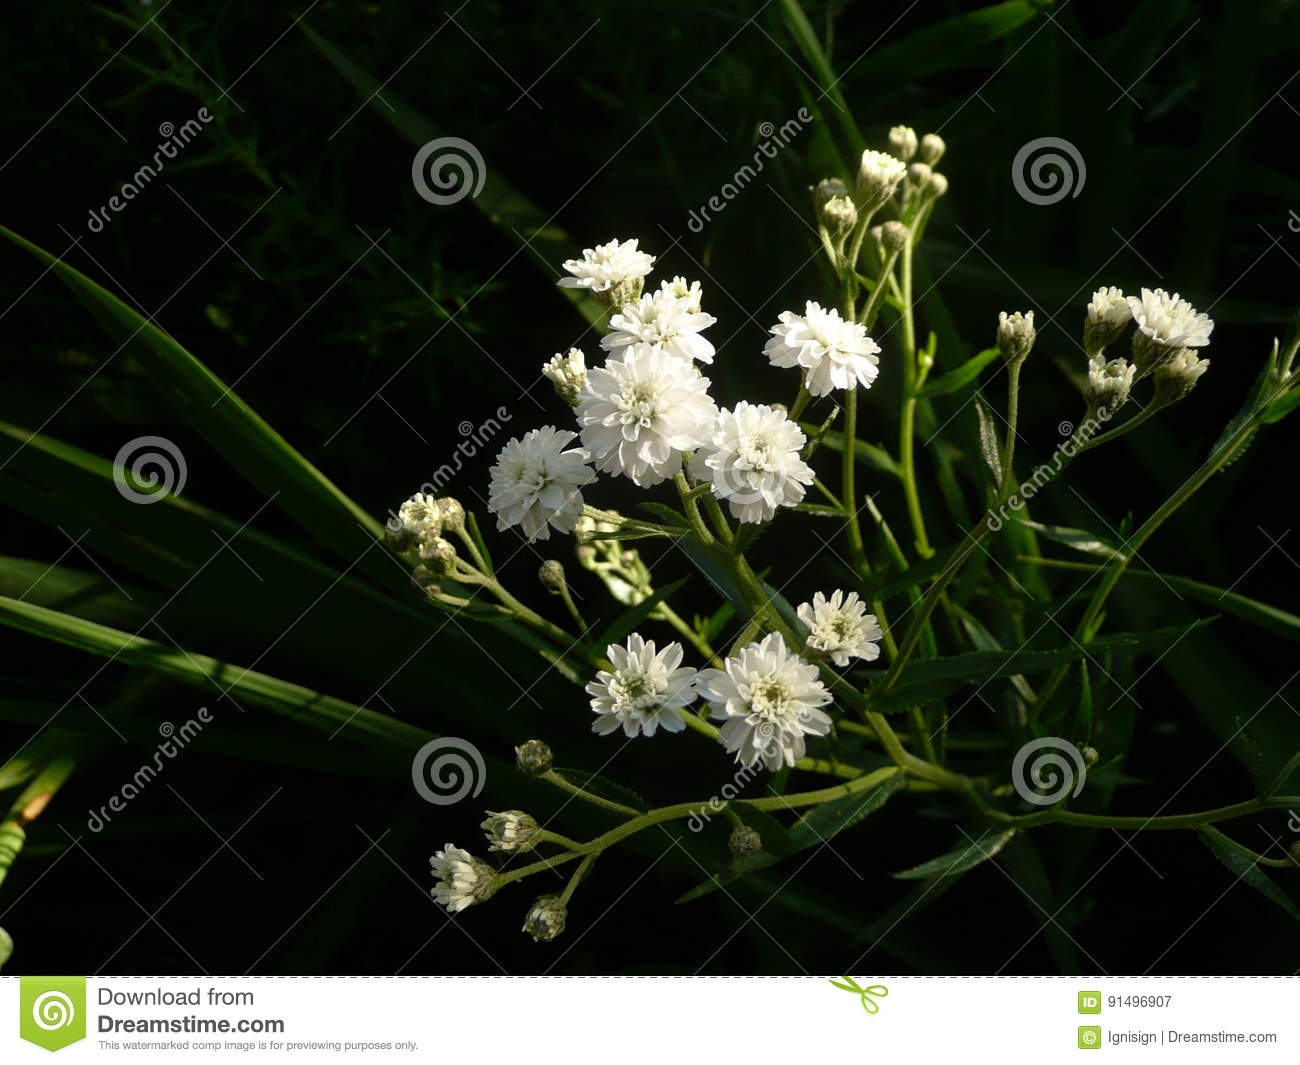 White Tiny Delicate Flowers Growing In The Garden Stock Image